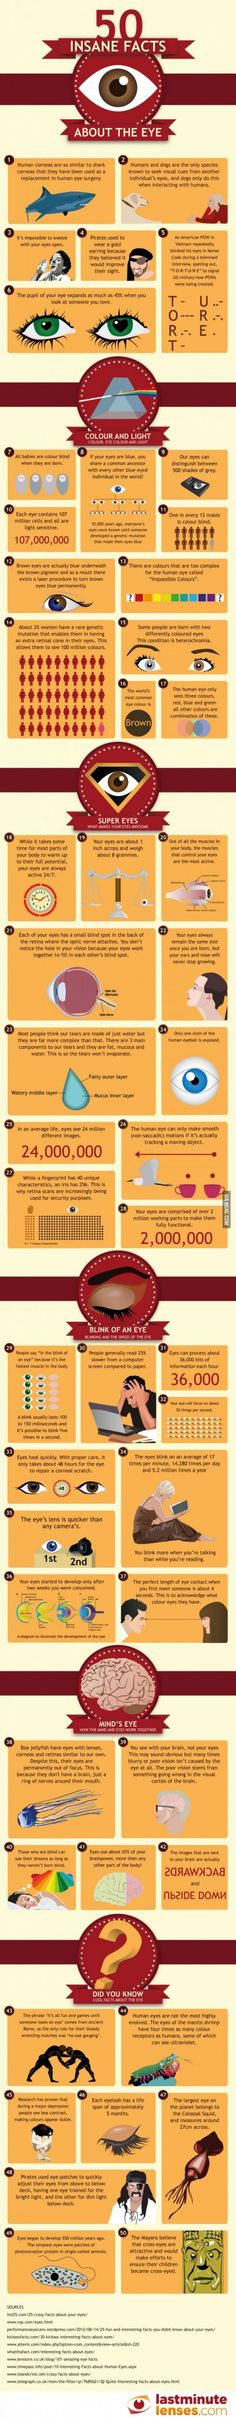 50 facts about the eye. #eye #infographic